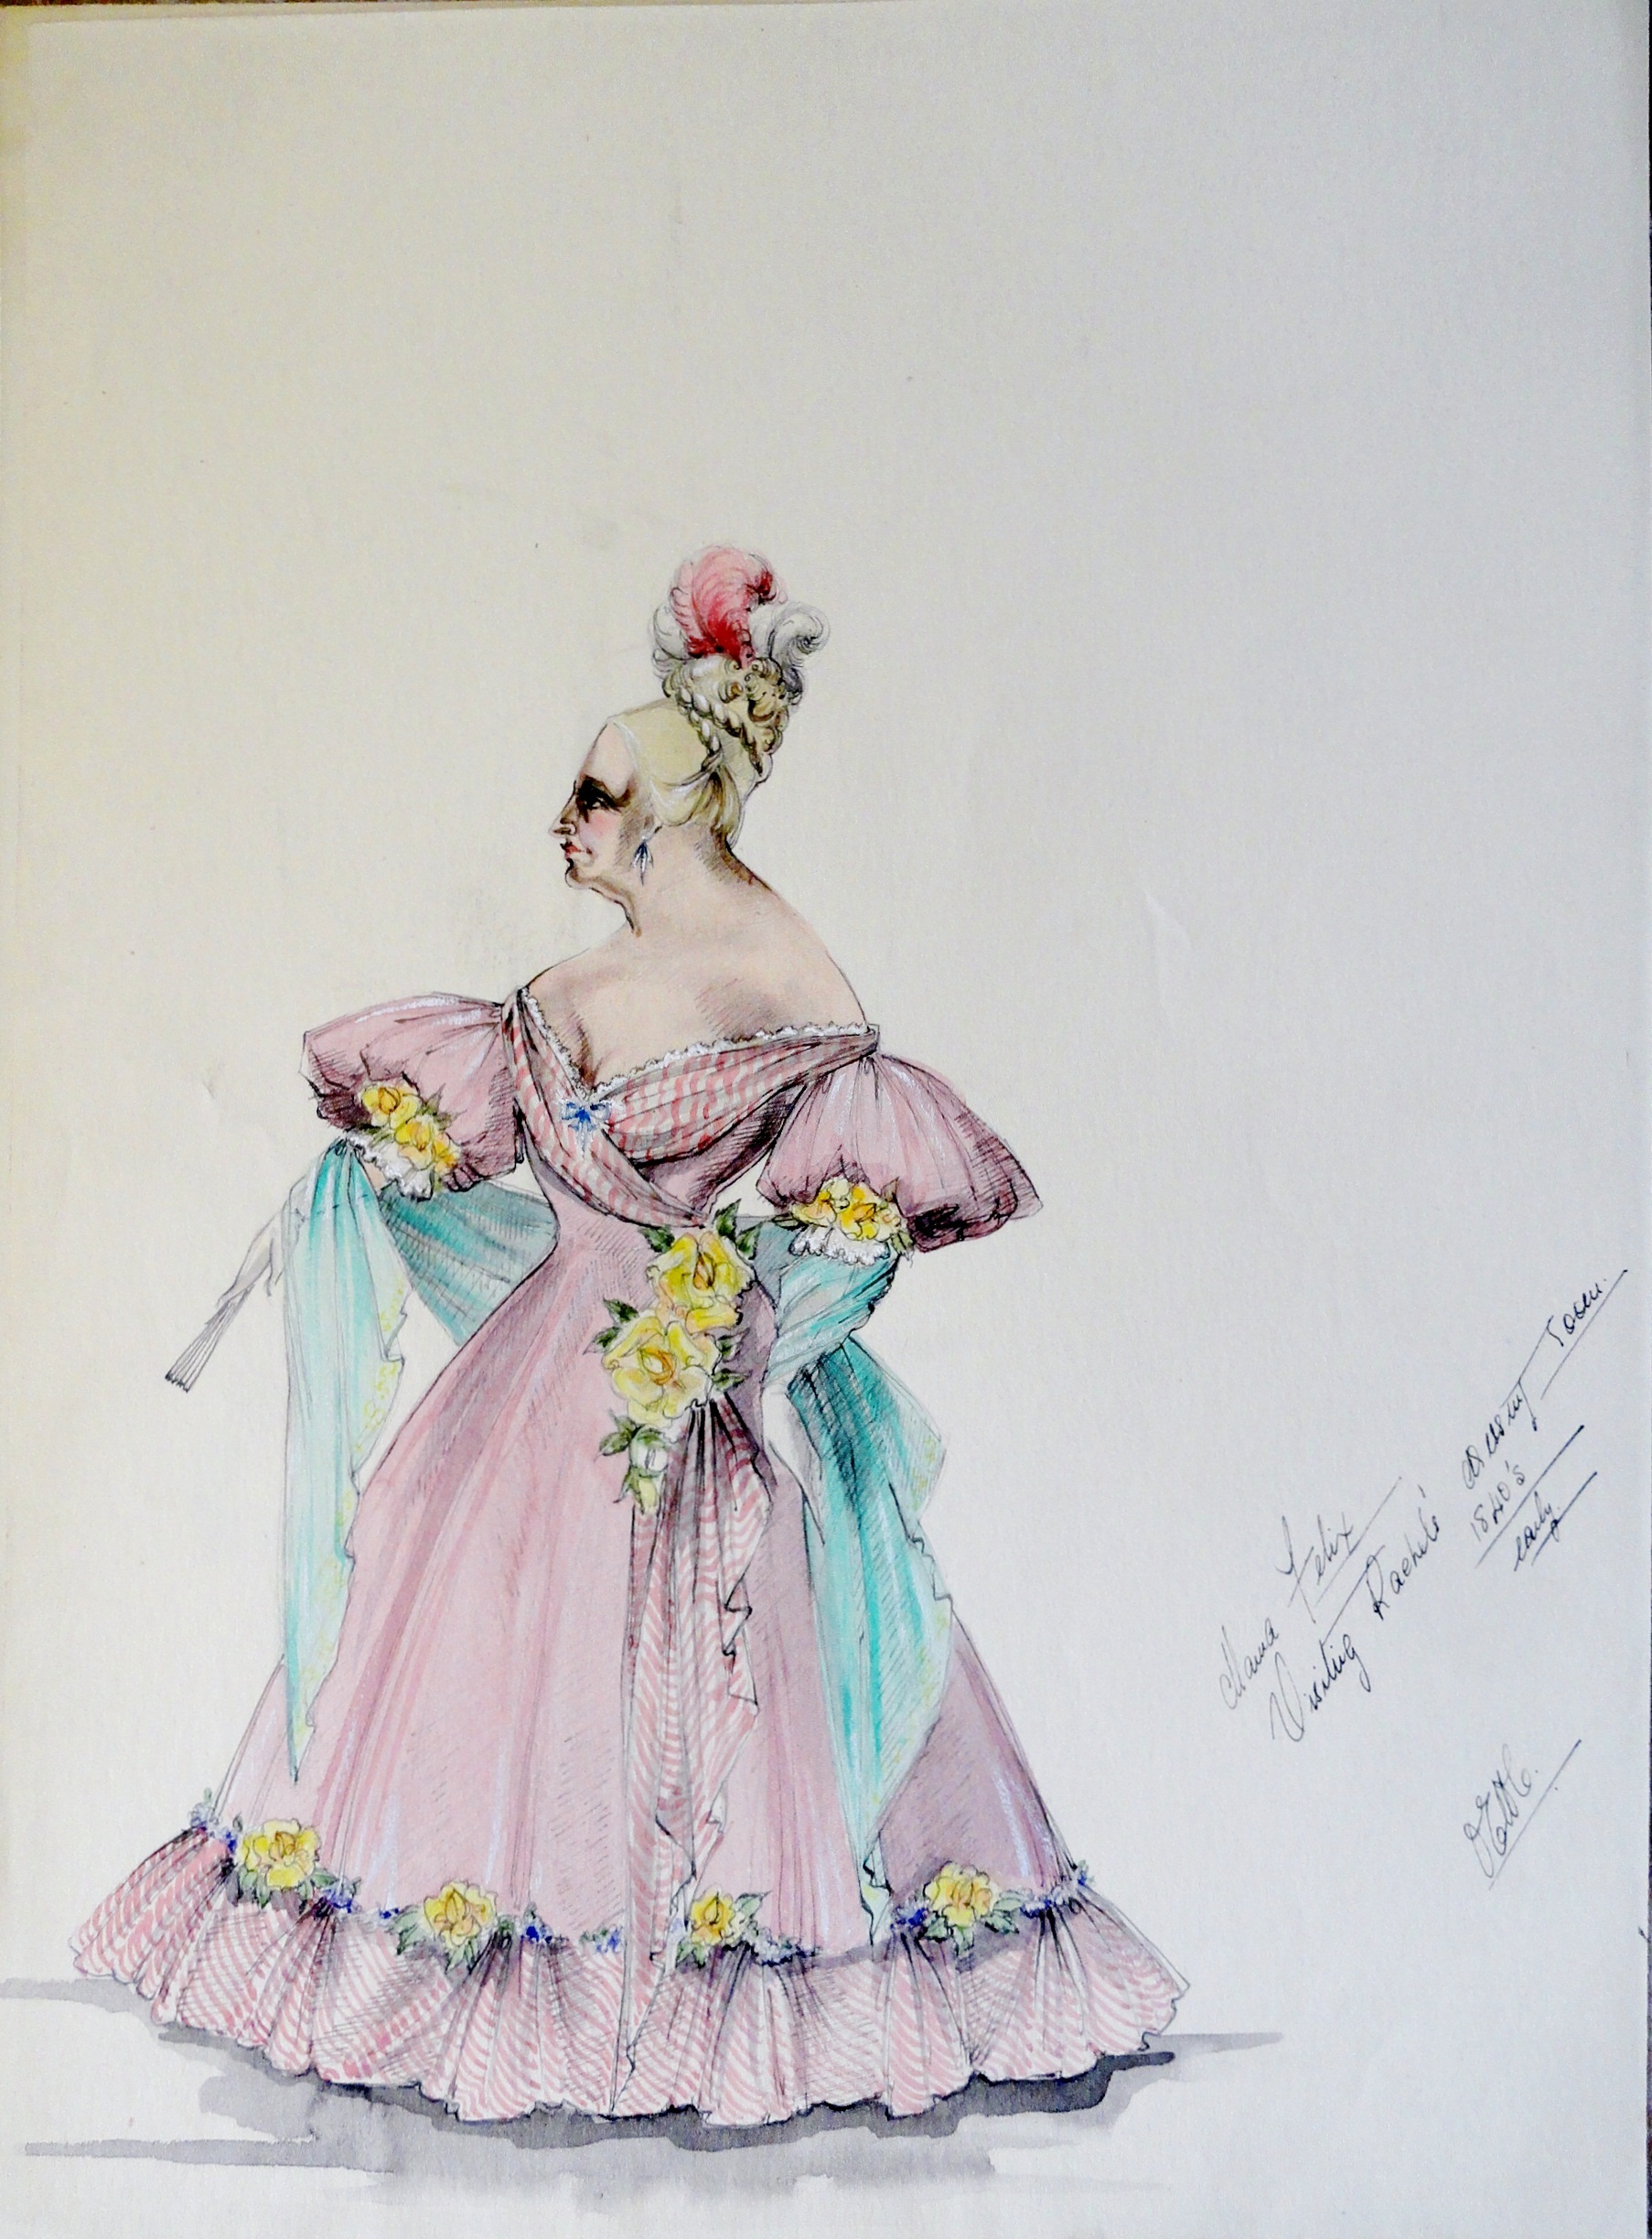 Rachel Mama Felix in pink gown with yellow flower accents $100.00